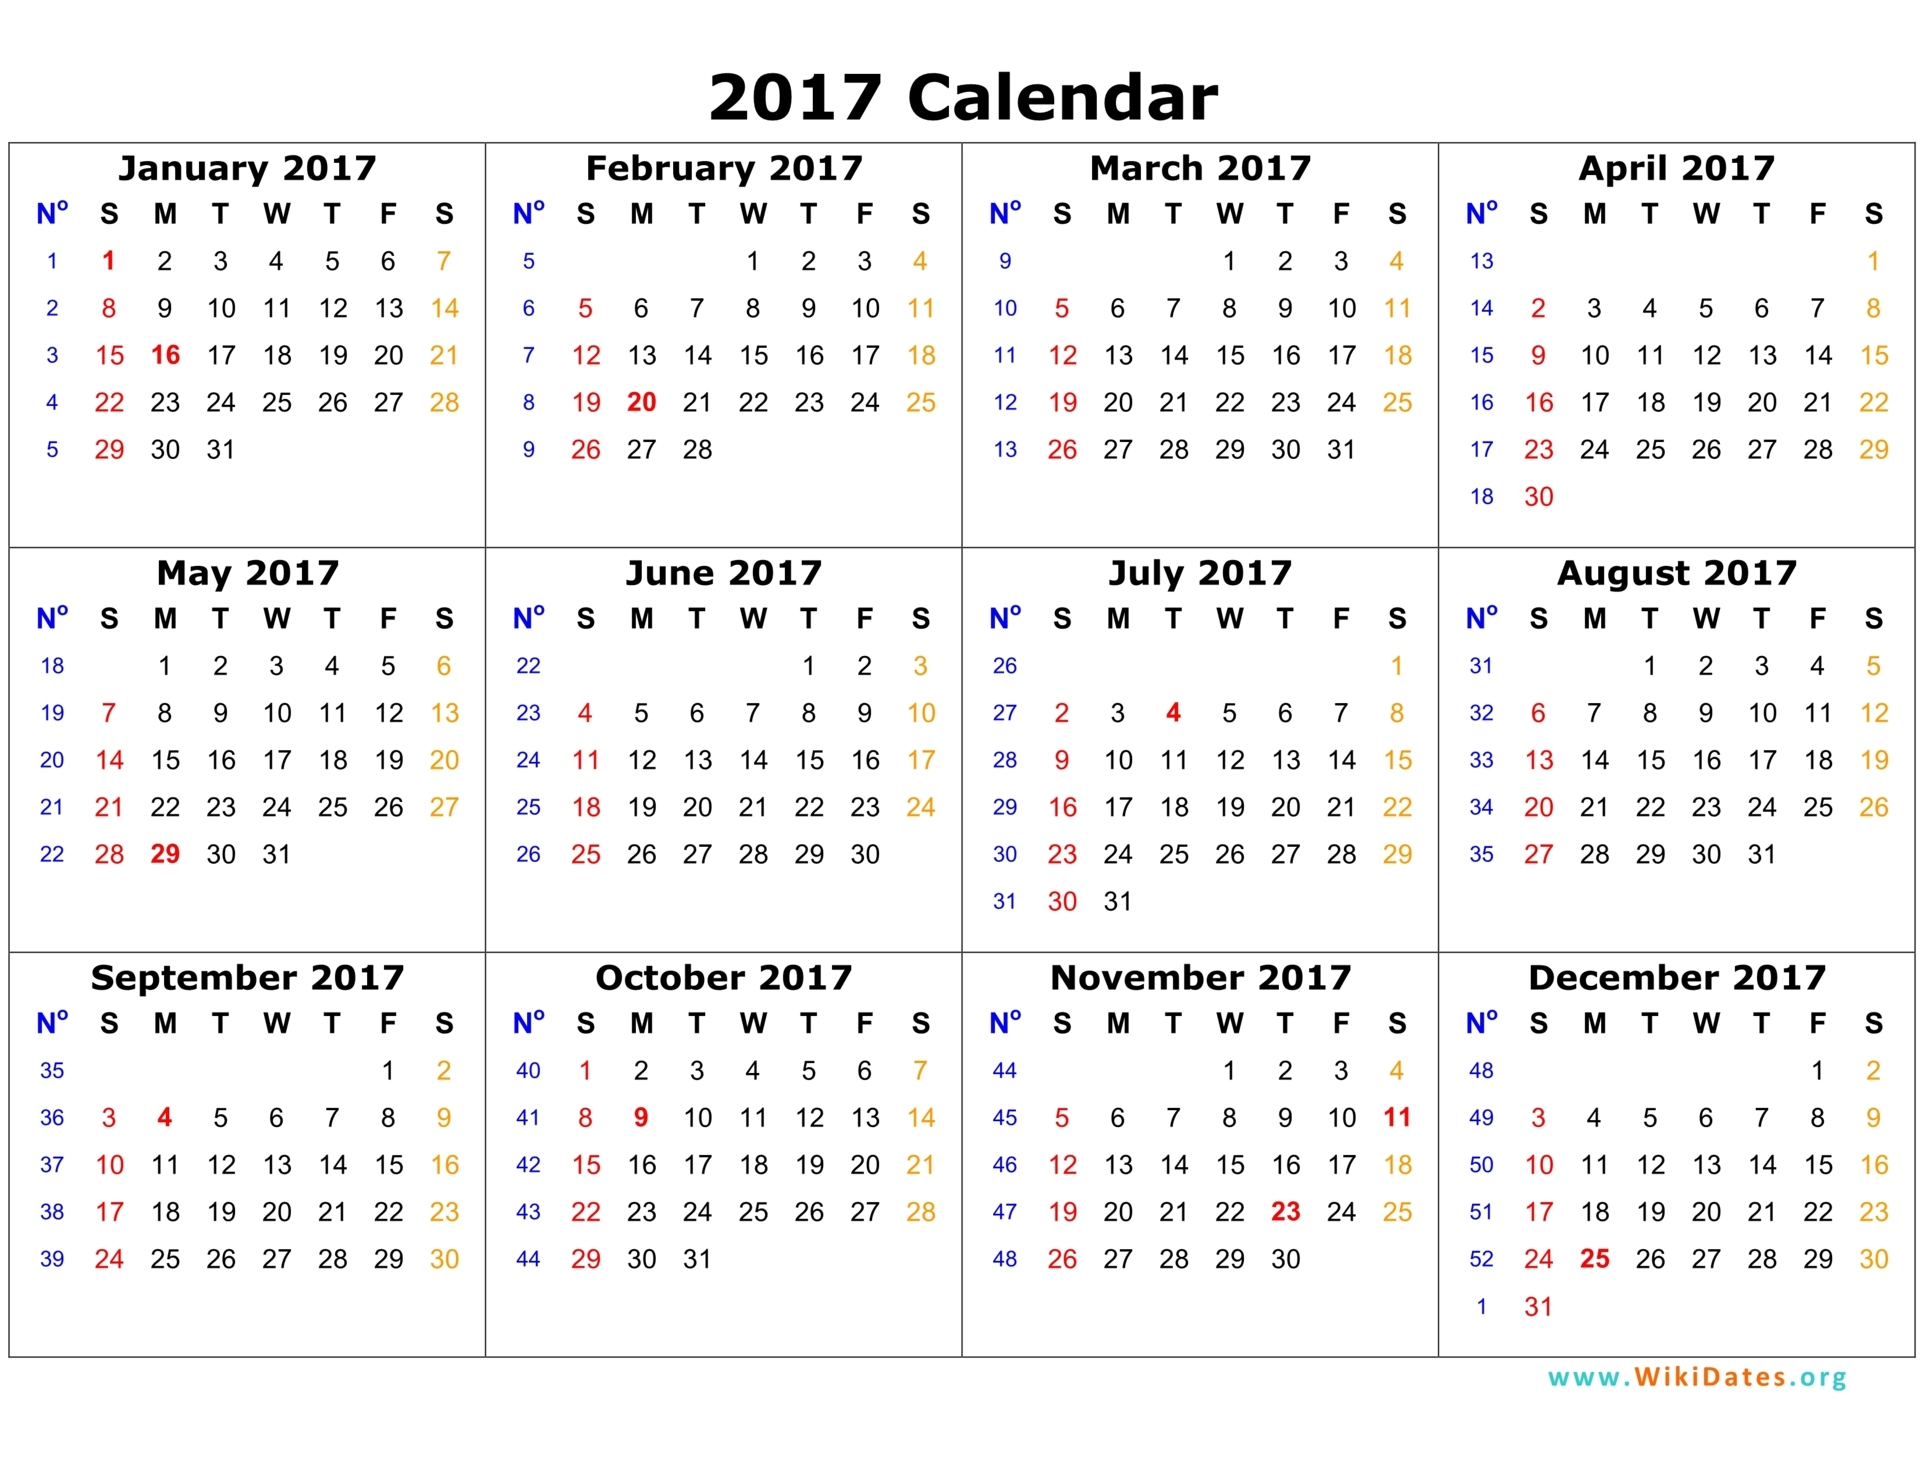 2017 Calendar Pdf | 2017 calendar with holidays